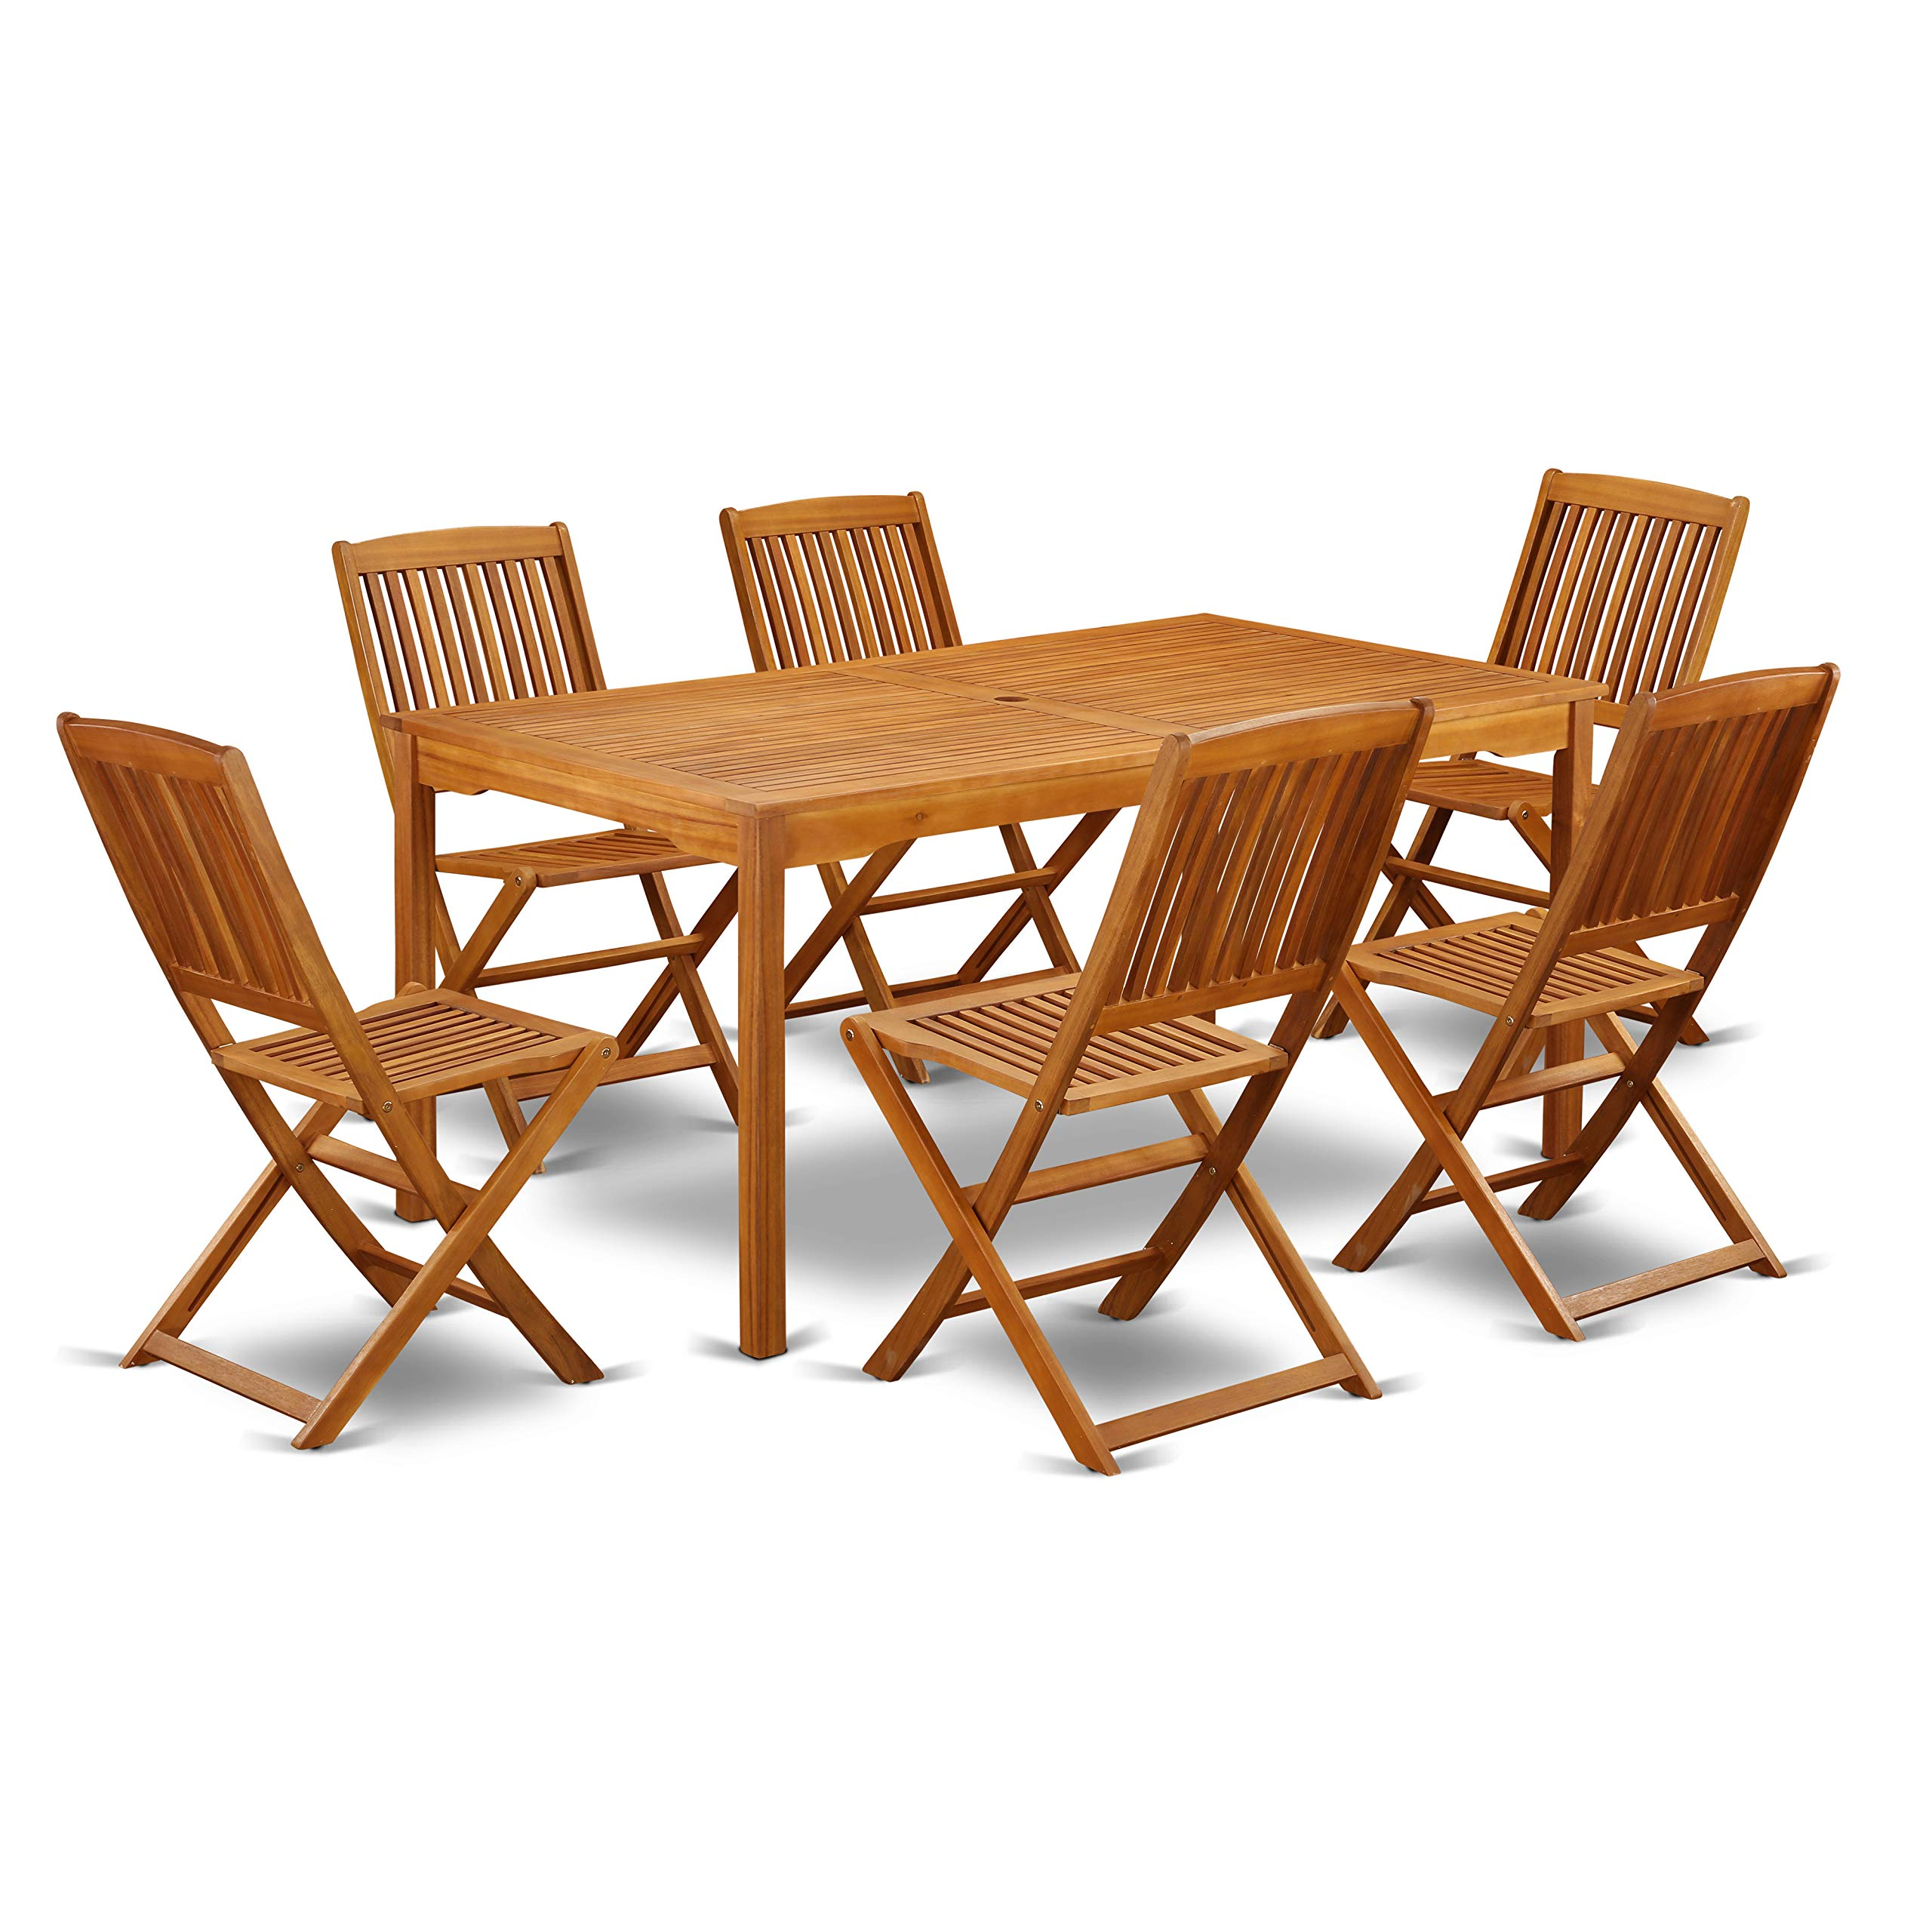 East West Furniture CMCM7CWNA This 7 Piece Acacia Solid Wood Outside Sets Offers one Outdoor Table and Six Patio Dining Chairs, Natural Oil